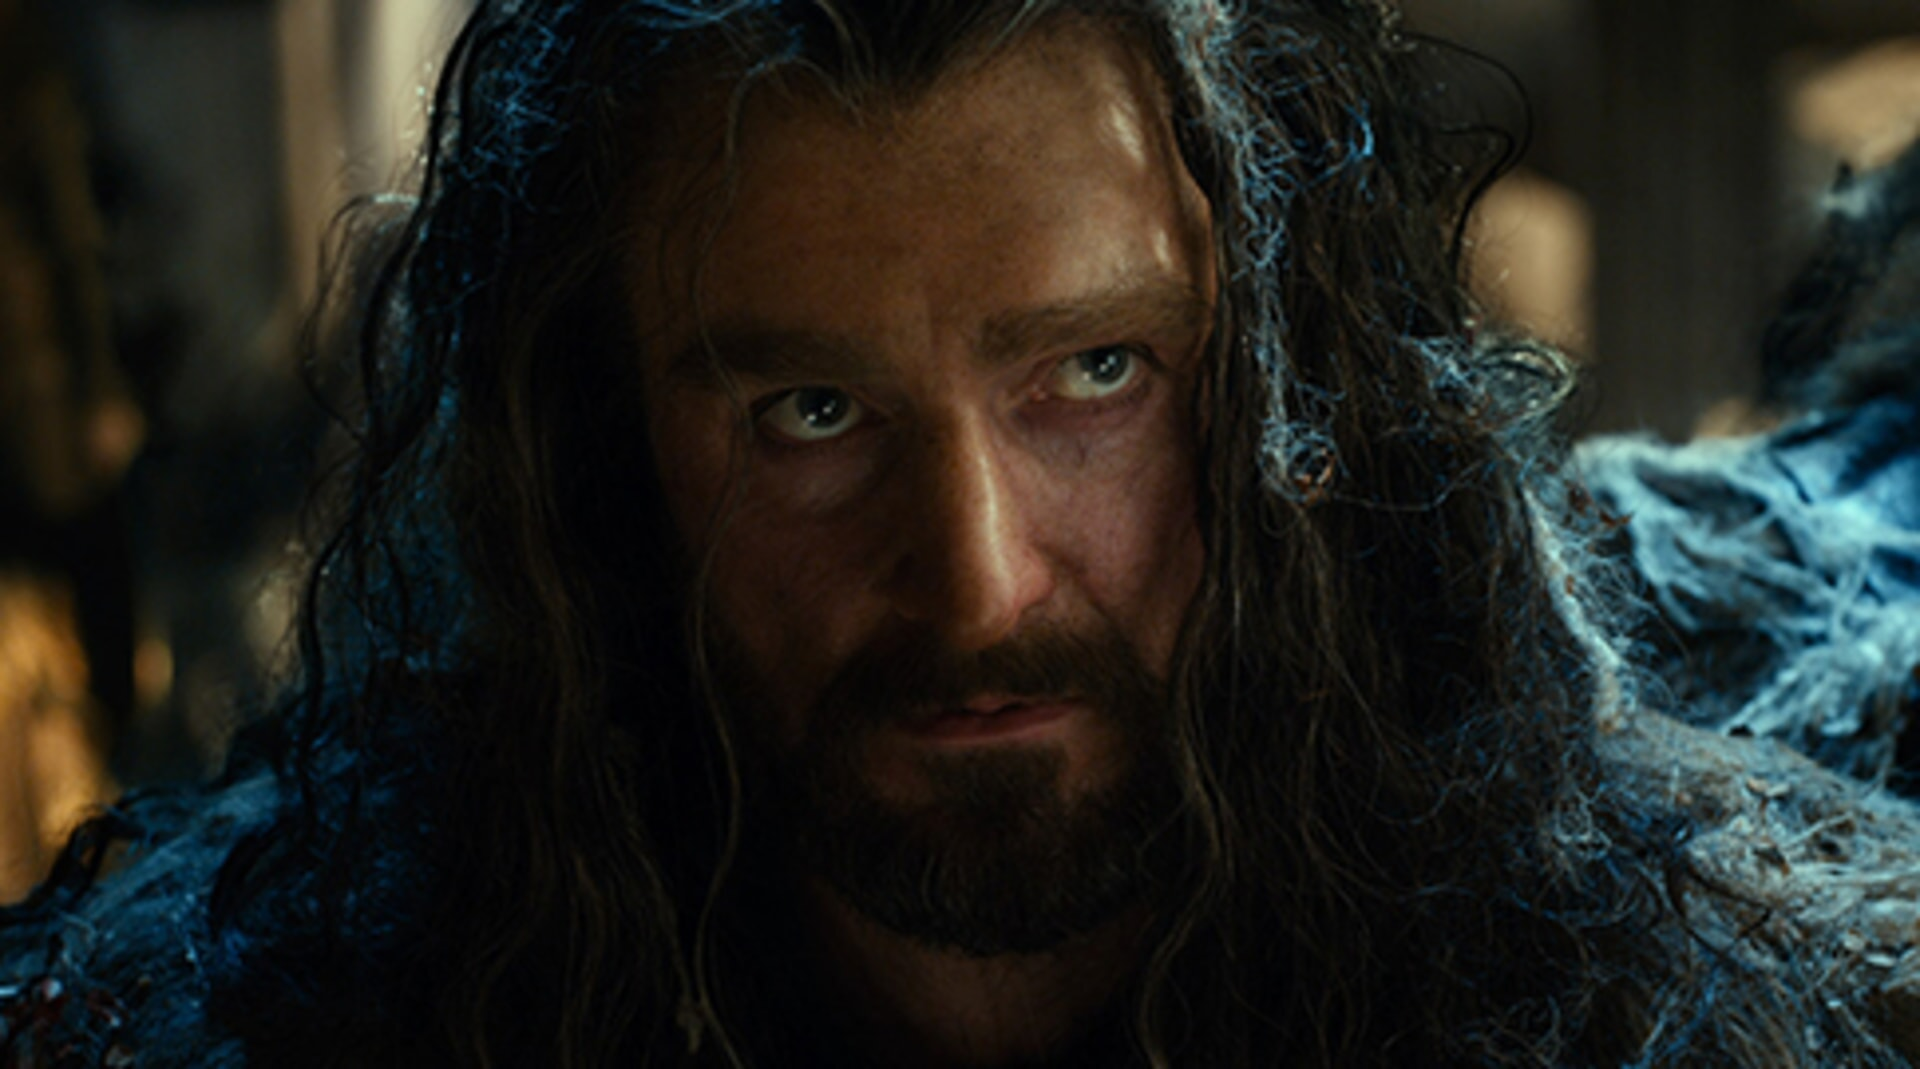 The Hobbit: The Desolation of Smaug - Image 2